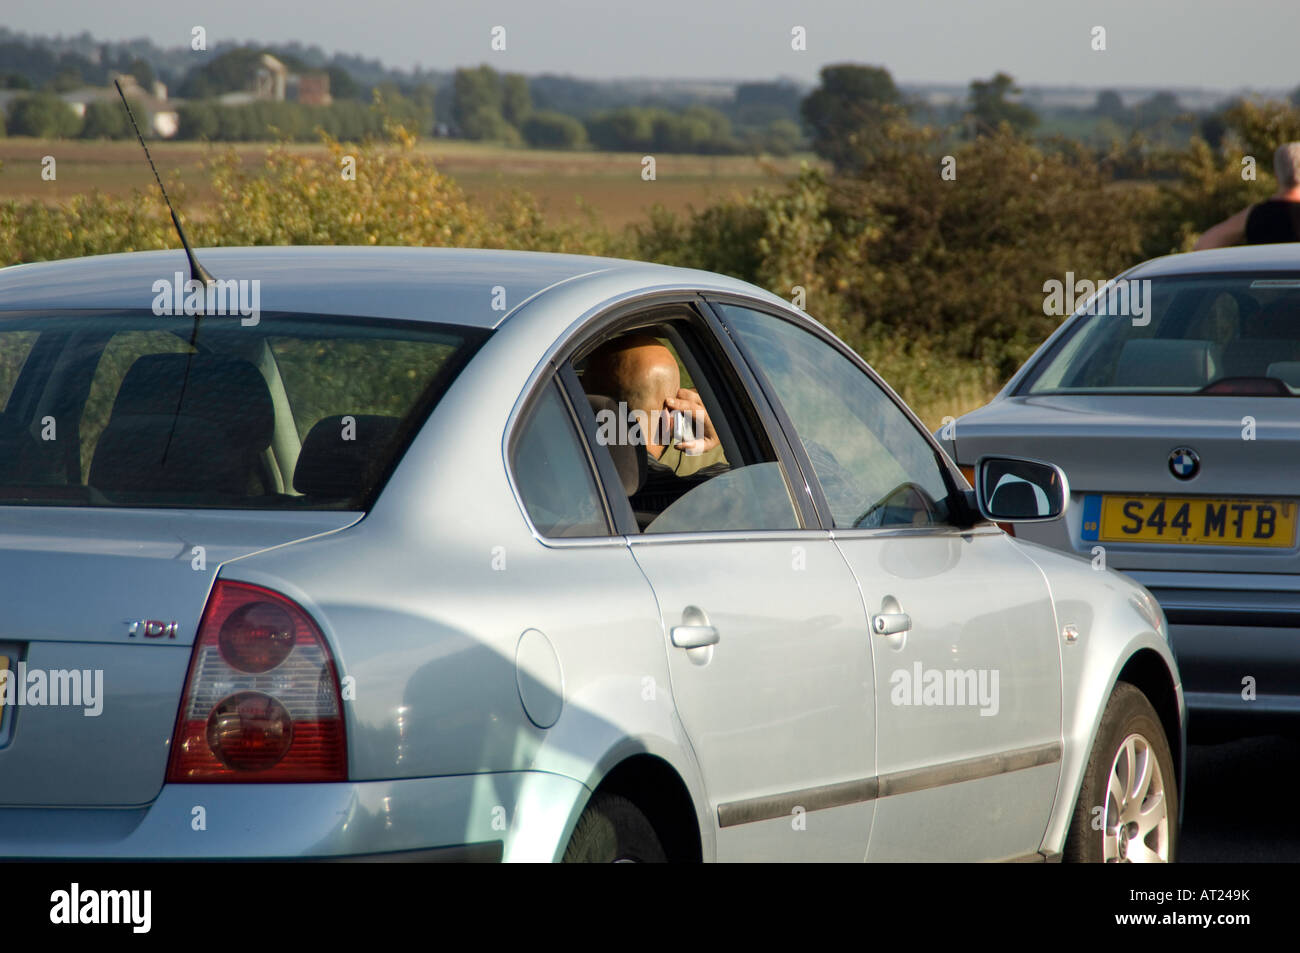 Motorway Sign Delay Stock Photos Images In Car Lights Mobile Phone Being Used A Vehicle Whilst Delayed Traffic Jam On The Uk